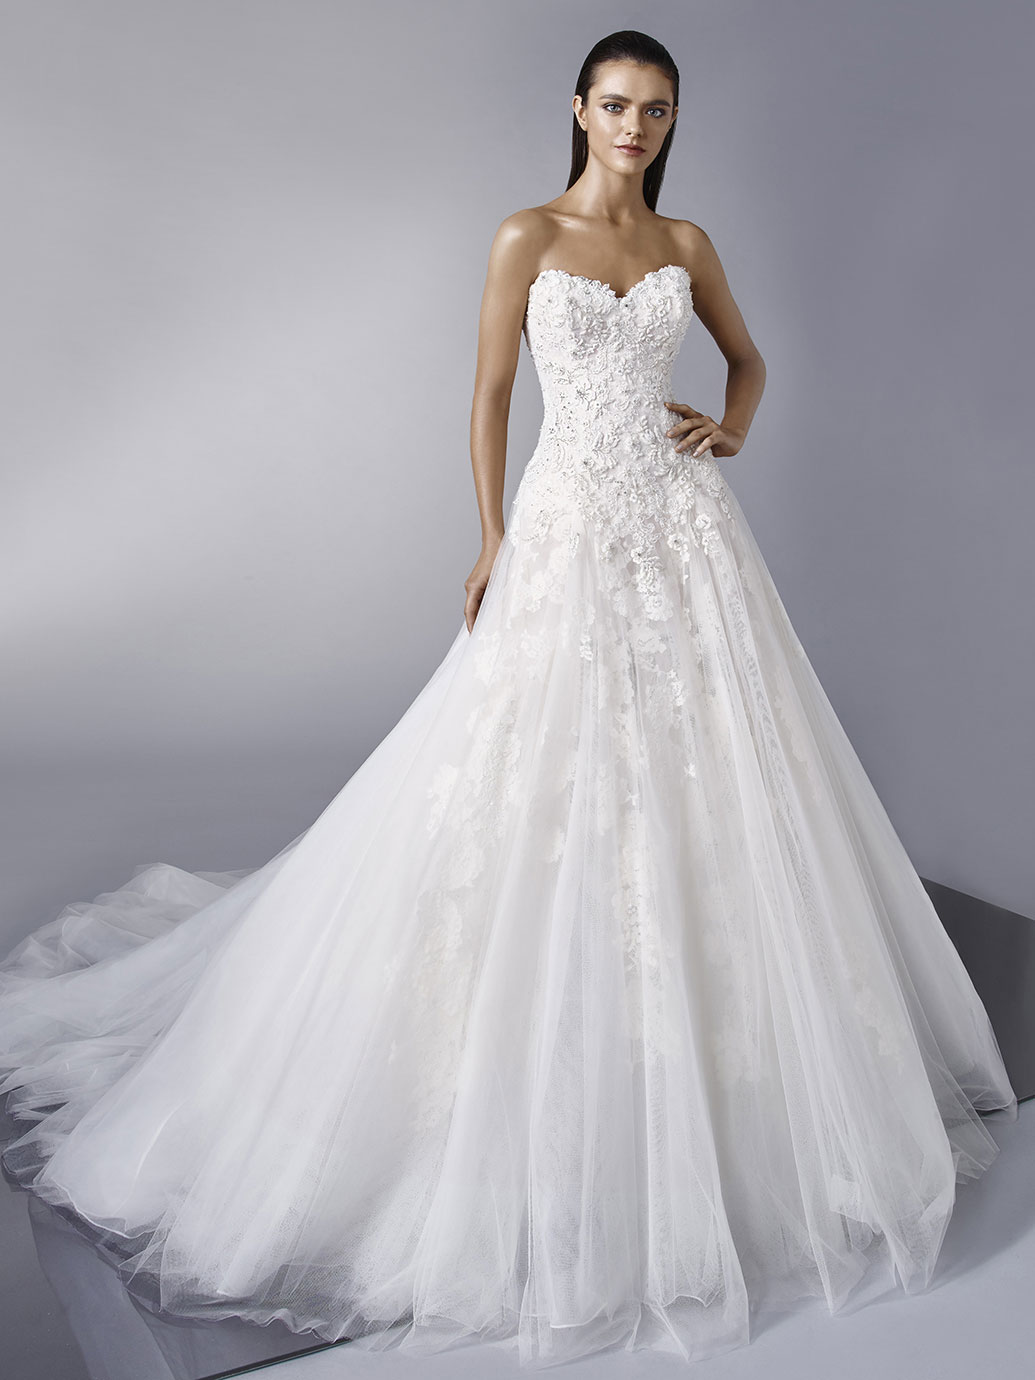 dbf4a086fea Introducing the Enzoani 2018 collection! - Love Our Wedding